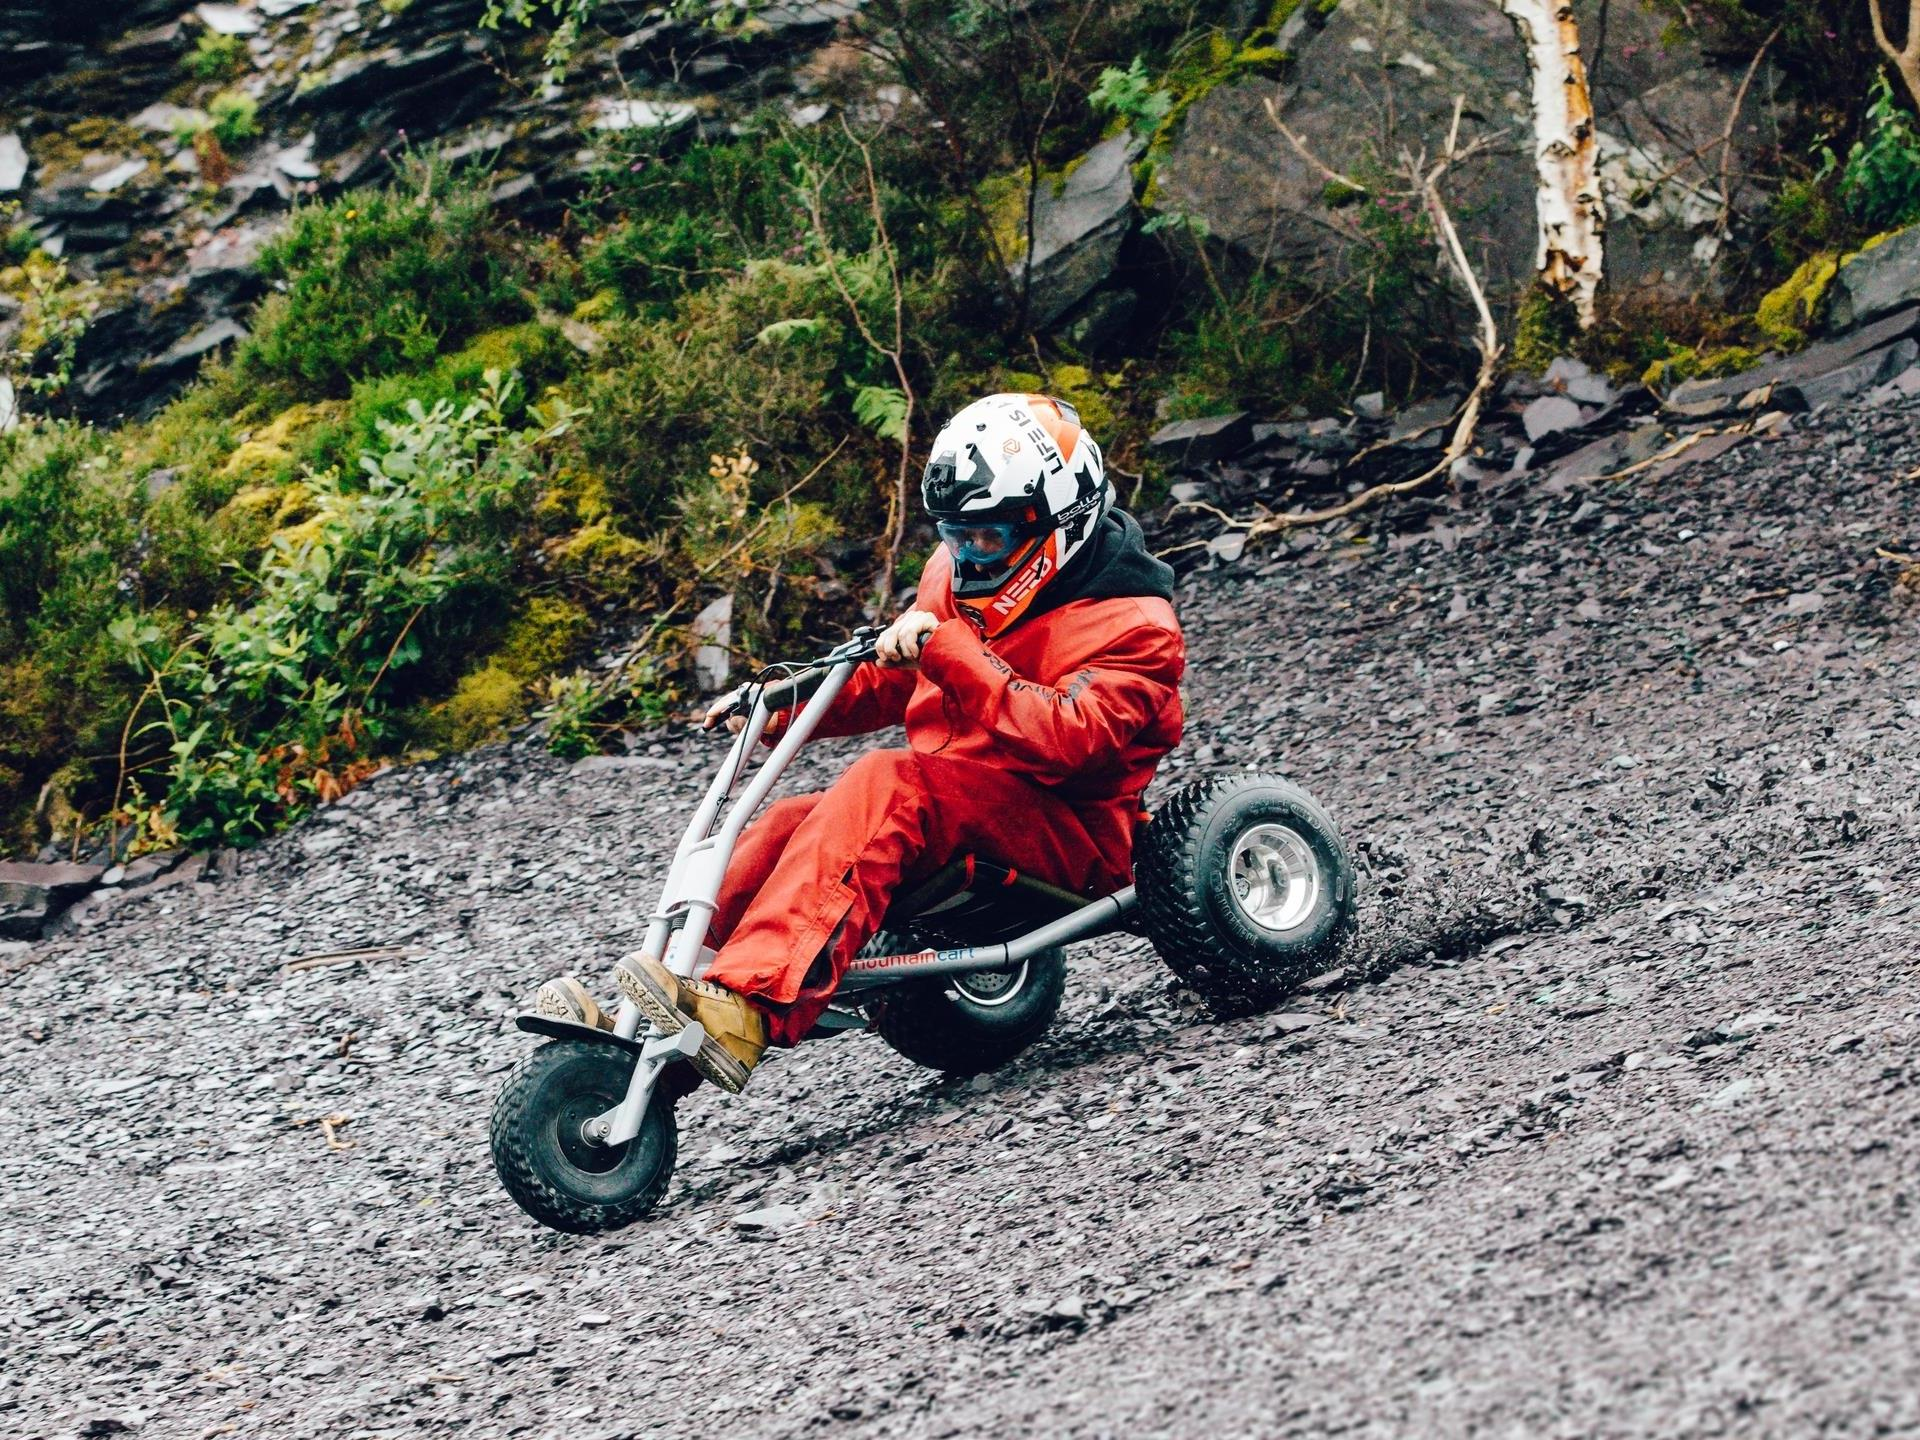 A rider takes on the Quarry Karts track